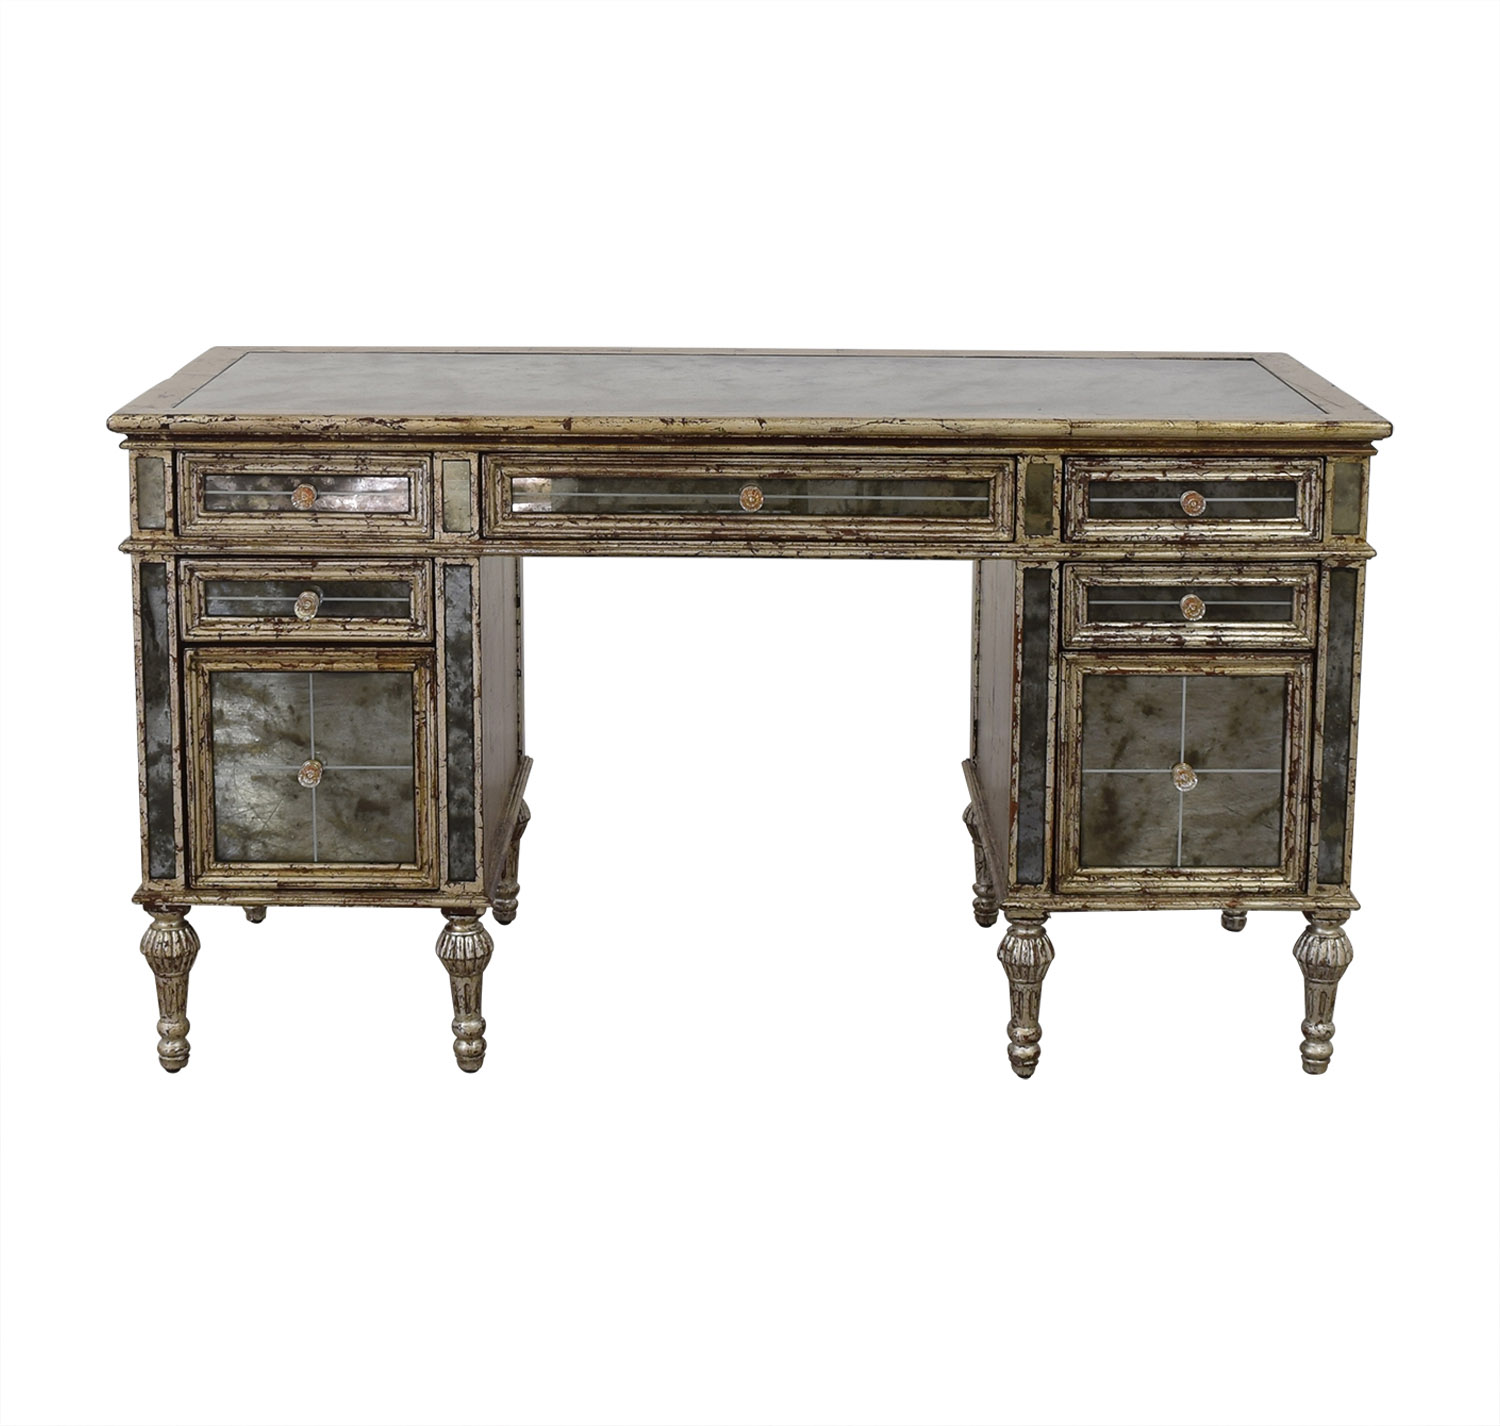 Horchow Horchow Sheridan Mirrored Desk Tables